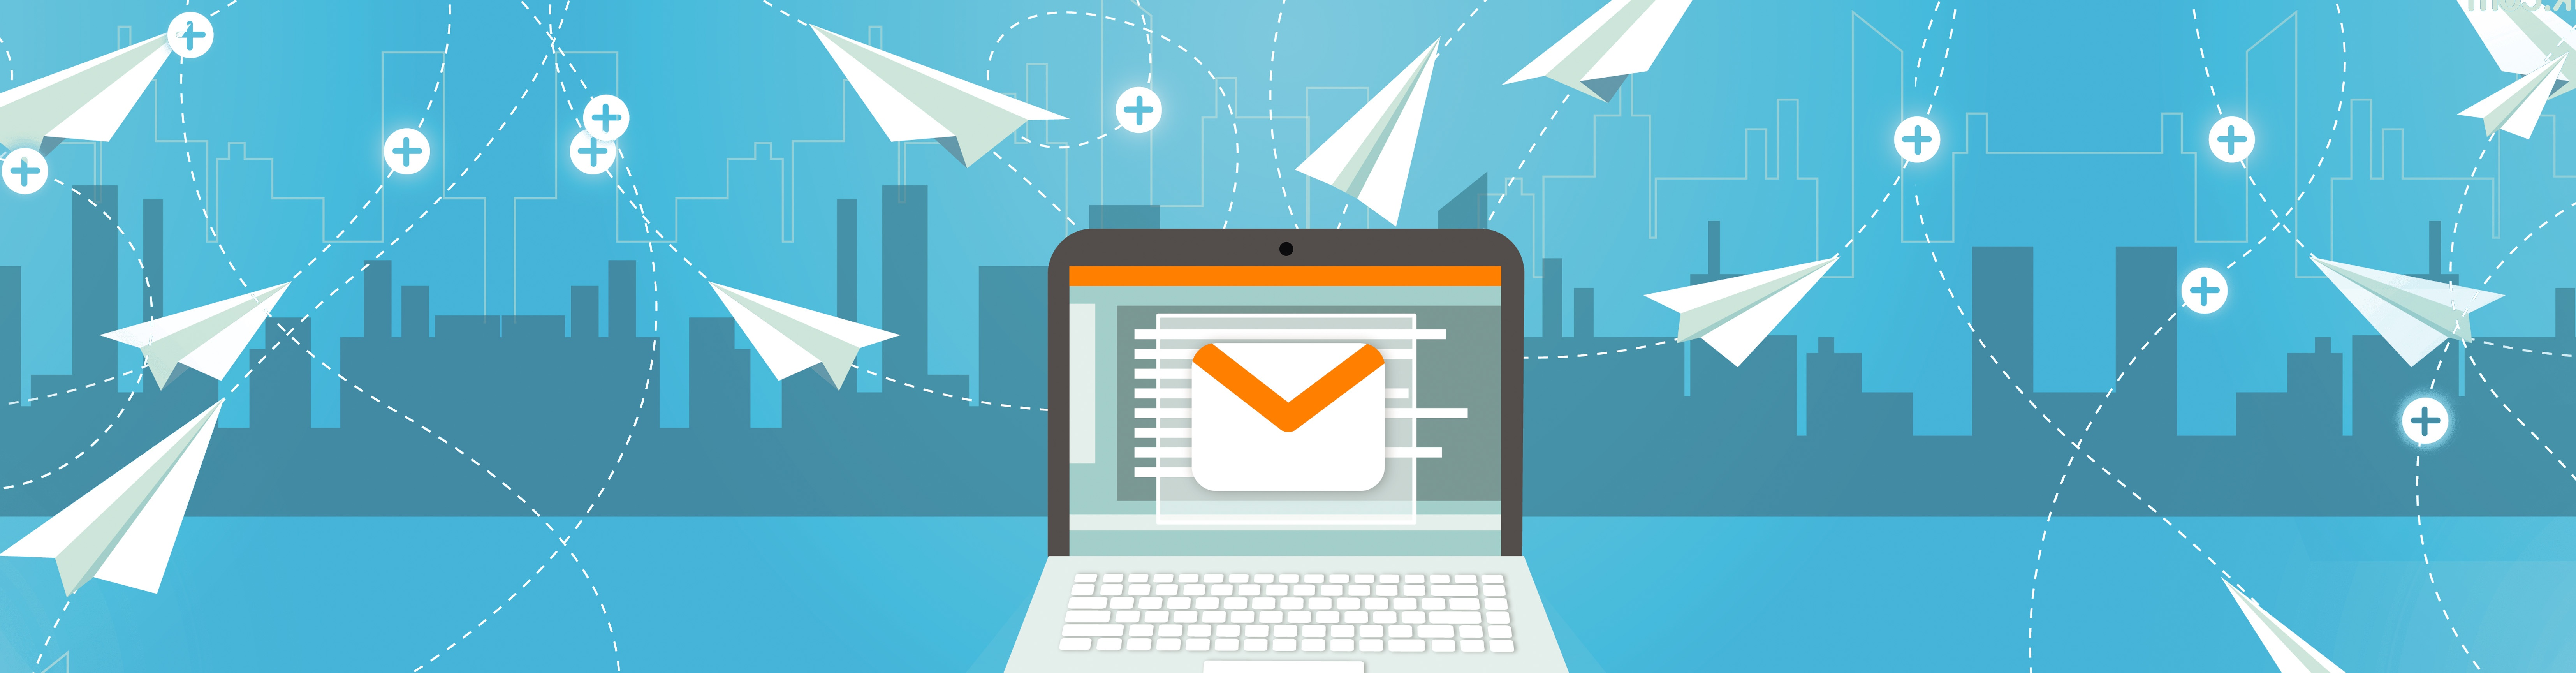 Email Marketing Savannah GA